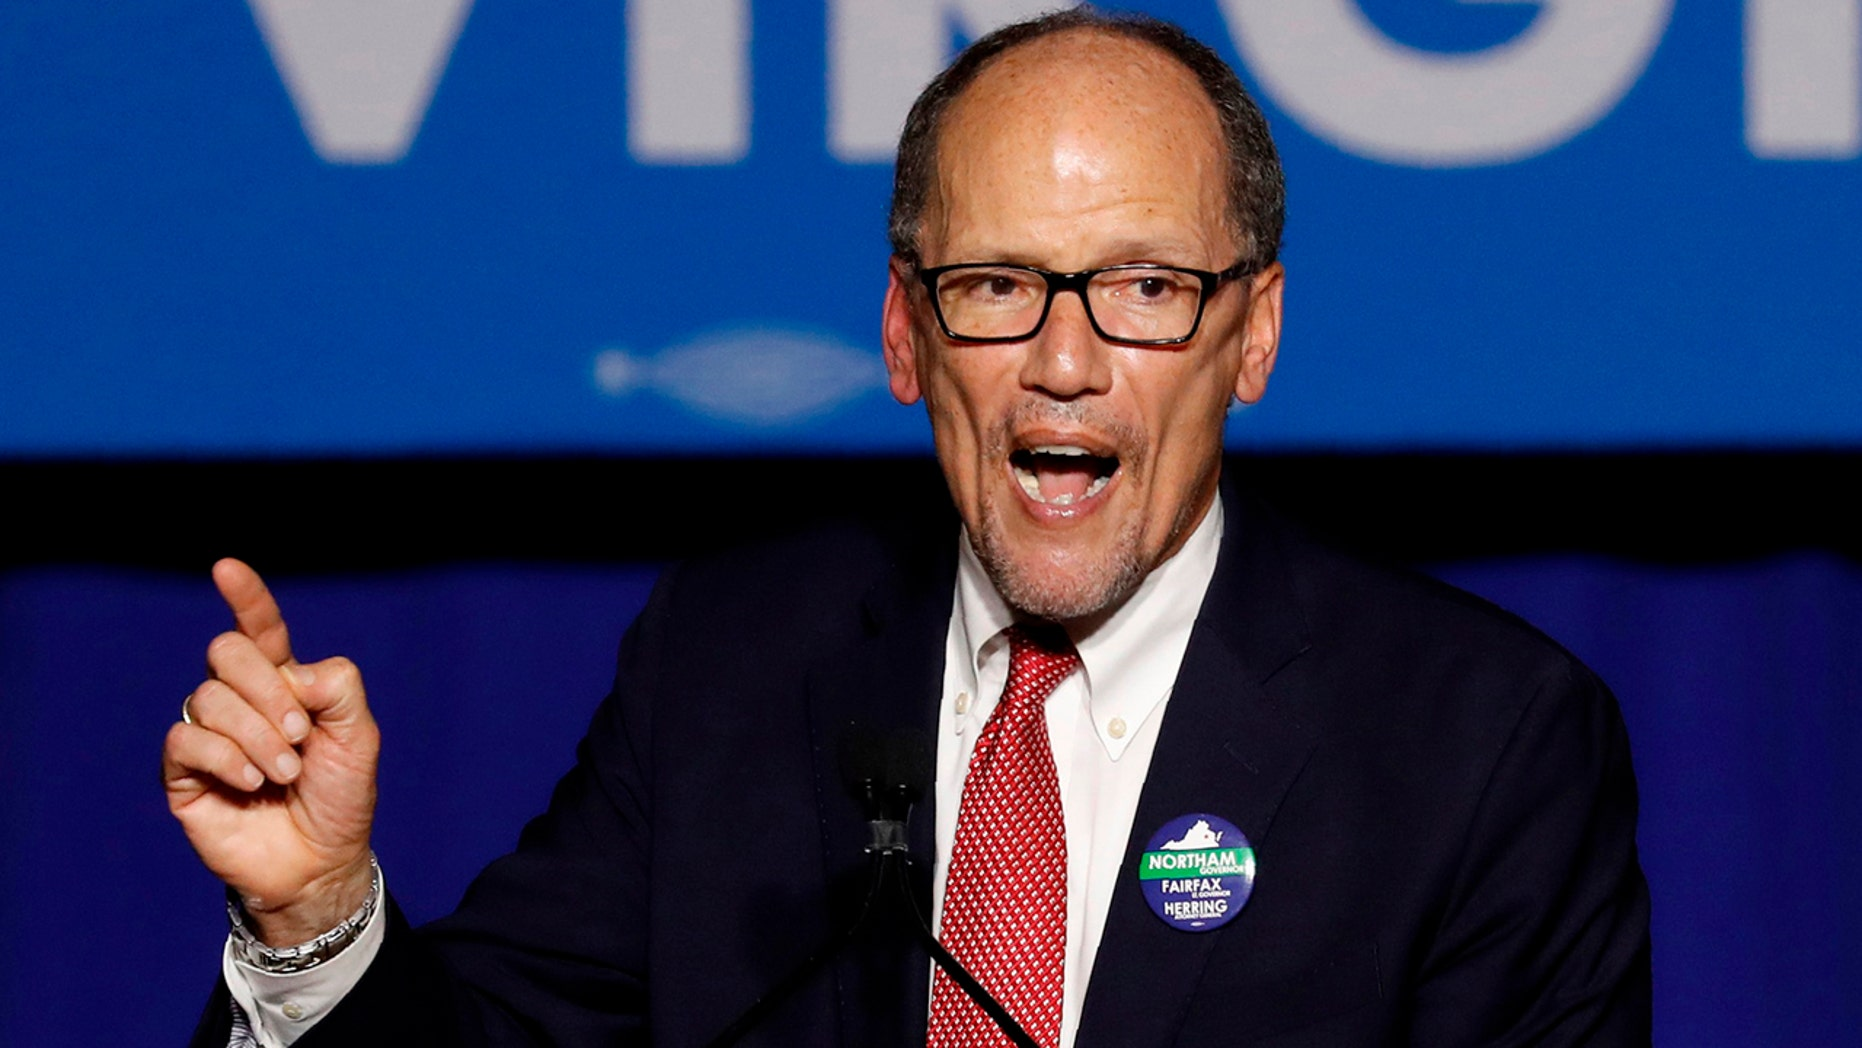 Democratic National Committee Chairman Tom Perez speaks at Ralph Northam's election night rally on the campus of George Mason University in Fairfax, Virginia, November 7, 2017.